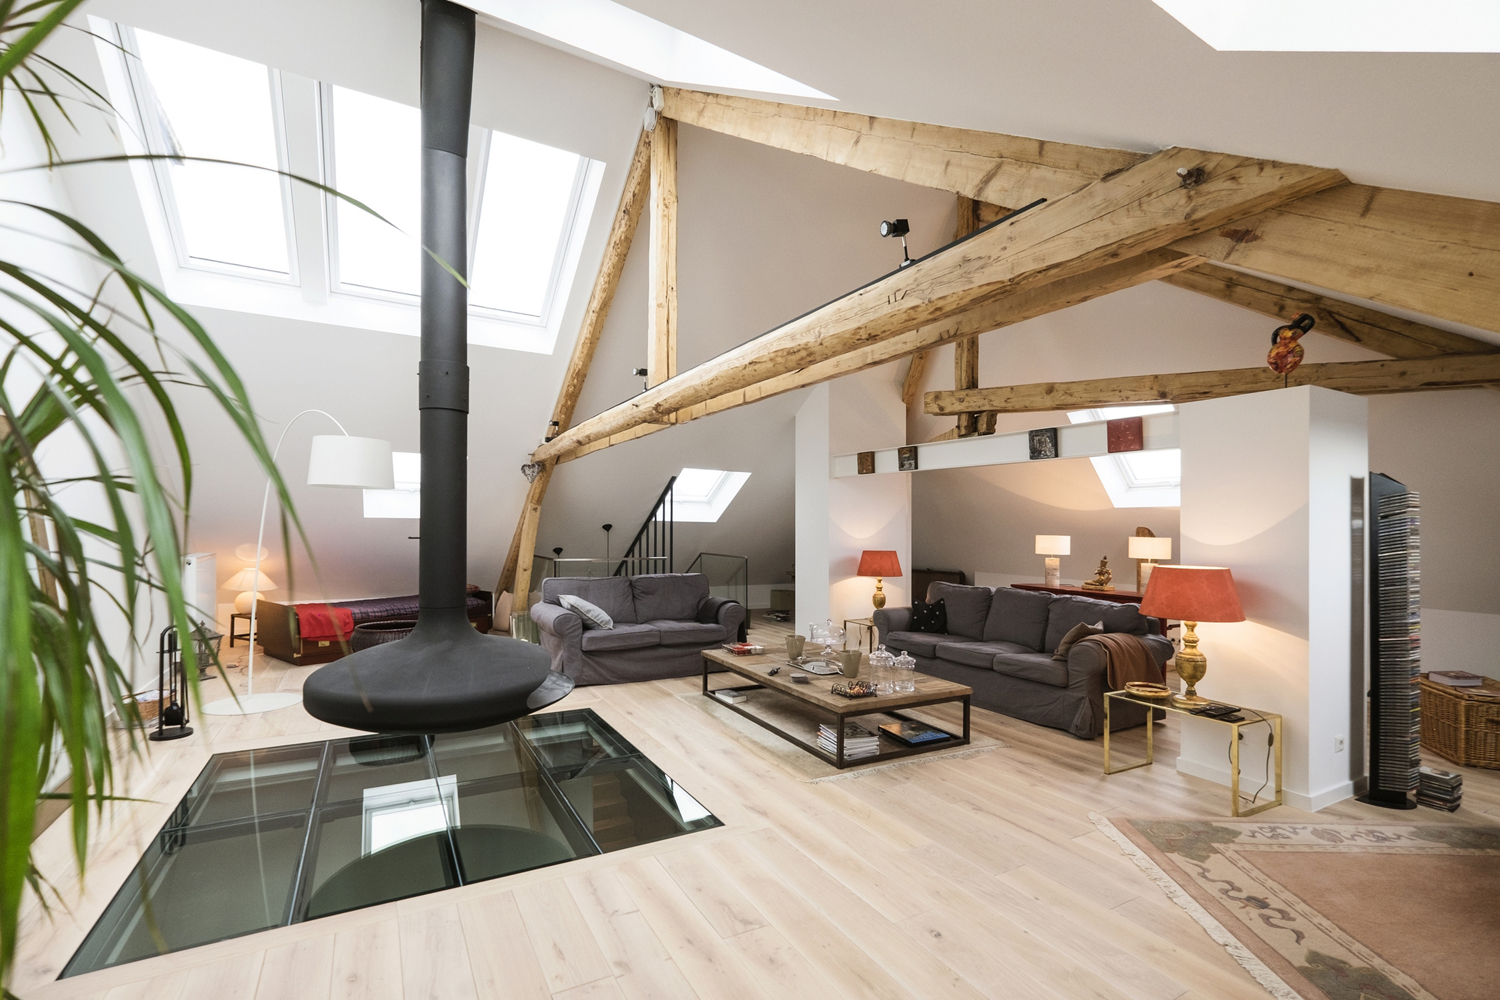 Living room with oak flooring and exposed wood beams